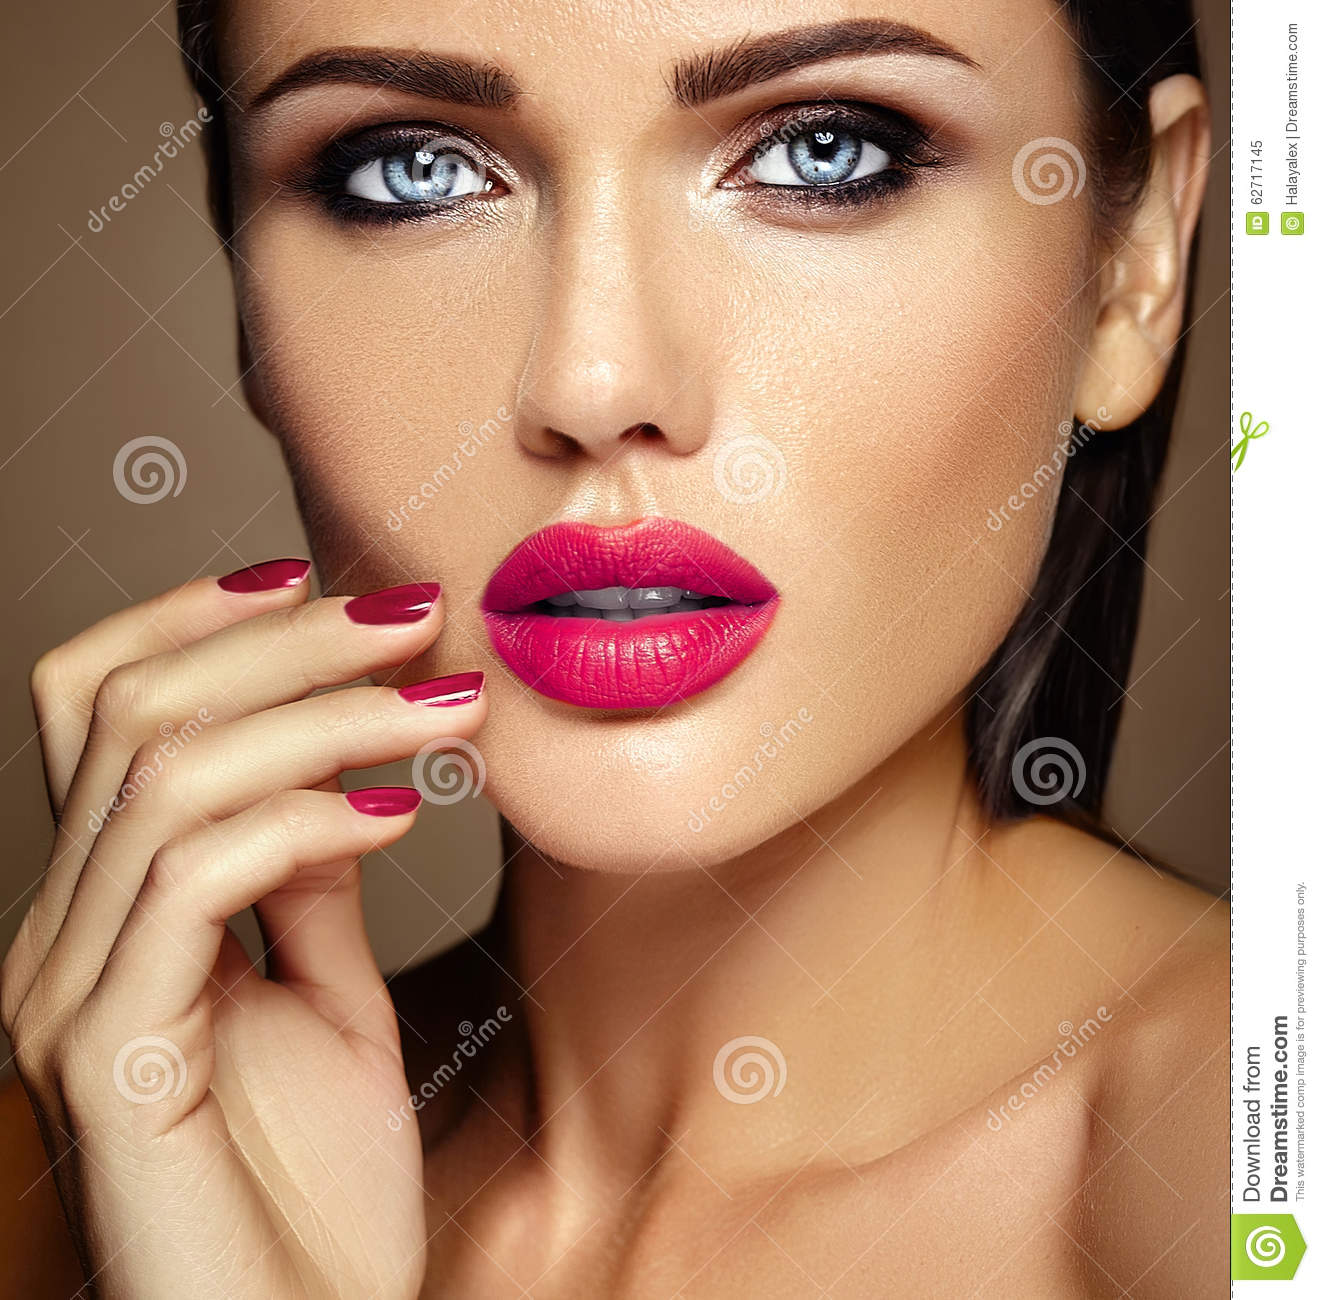 Beauty Glamur: Beautiful Glamour Model With Fresh Daily Makeup With Stock